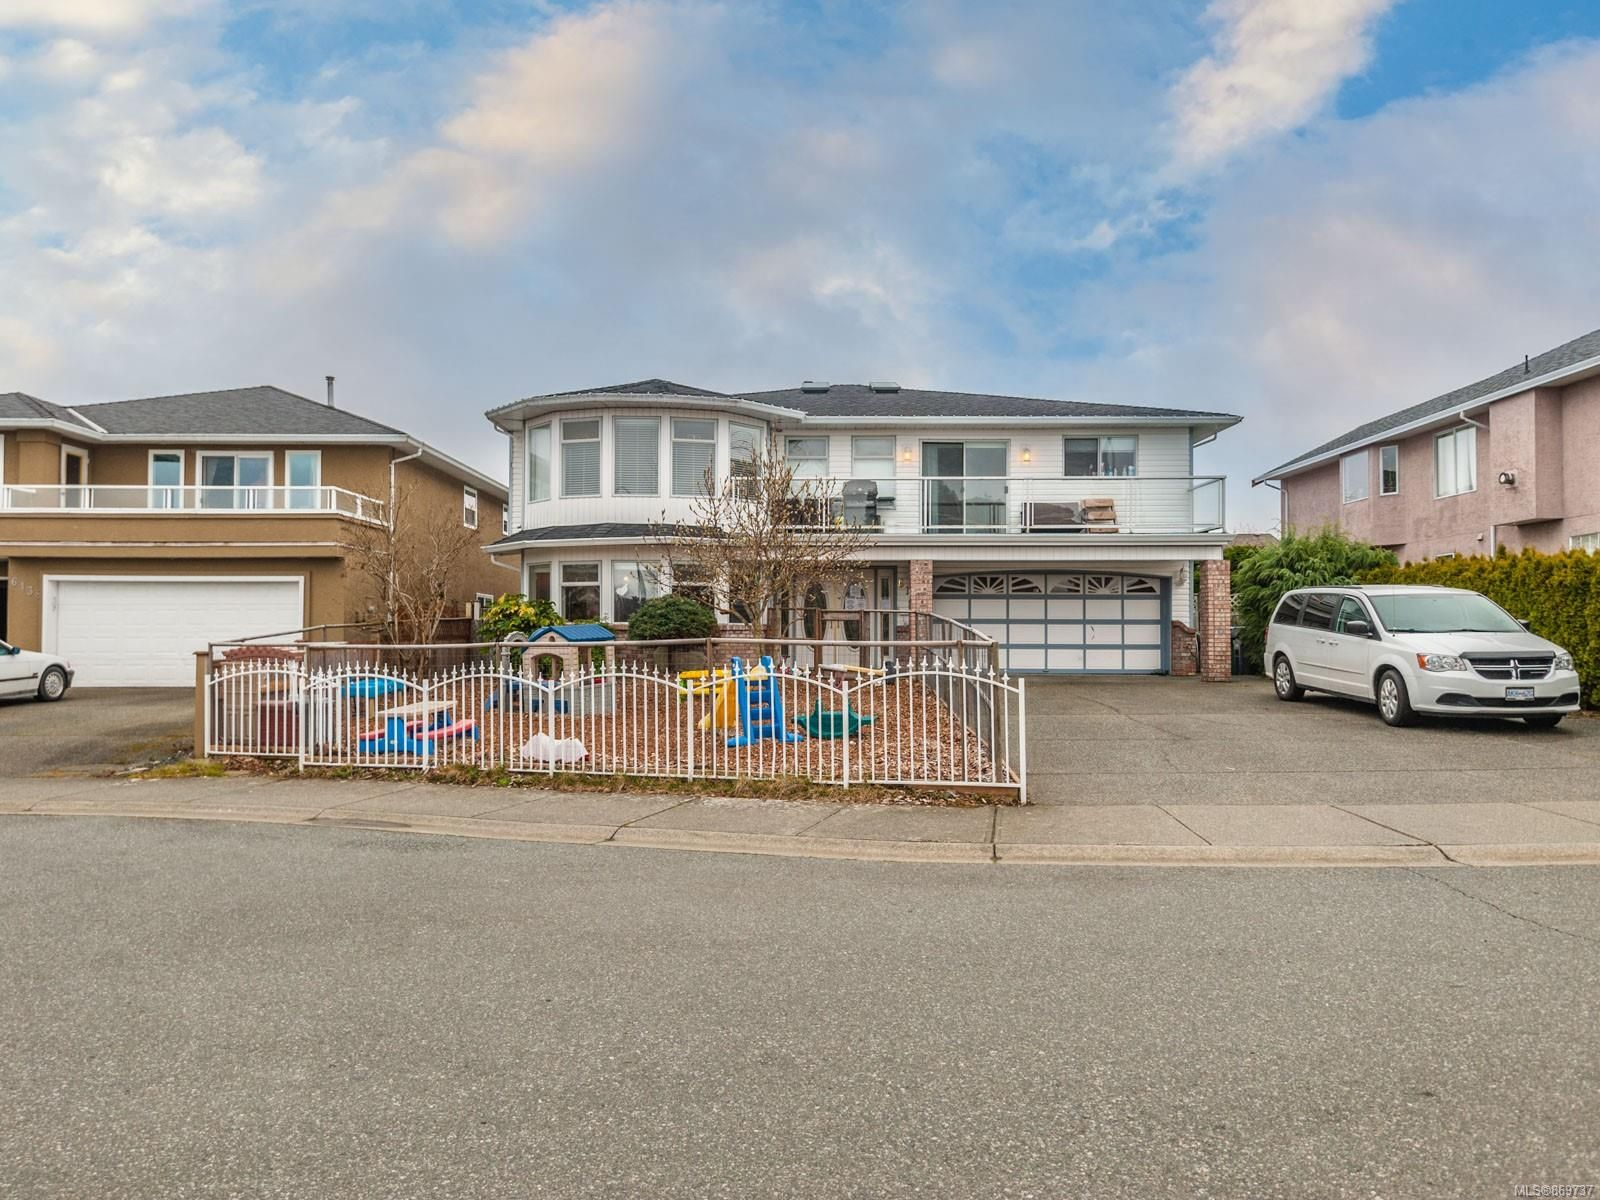 Main Photo: 6132 Mystic Way in : Na North Nanaimo House for sale (Nanaimo)  : MLS®# 869737